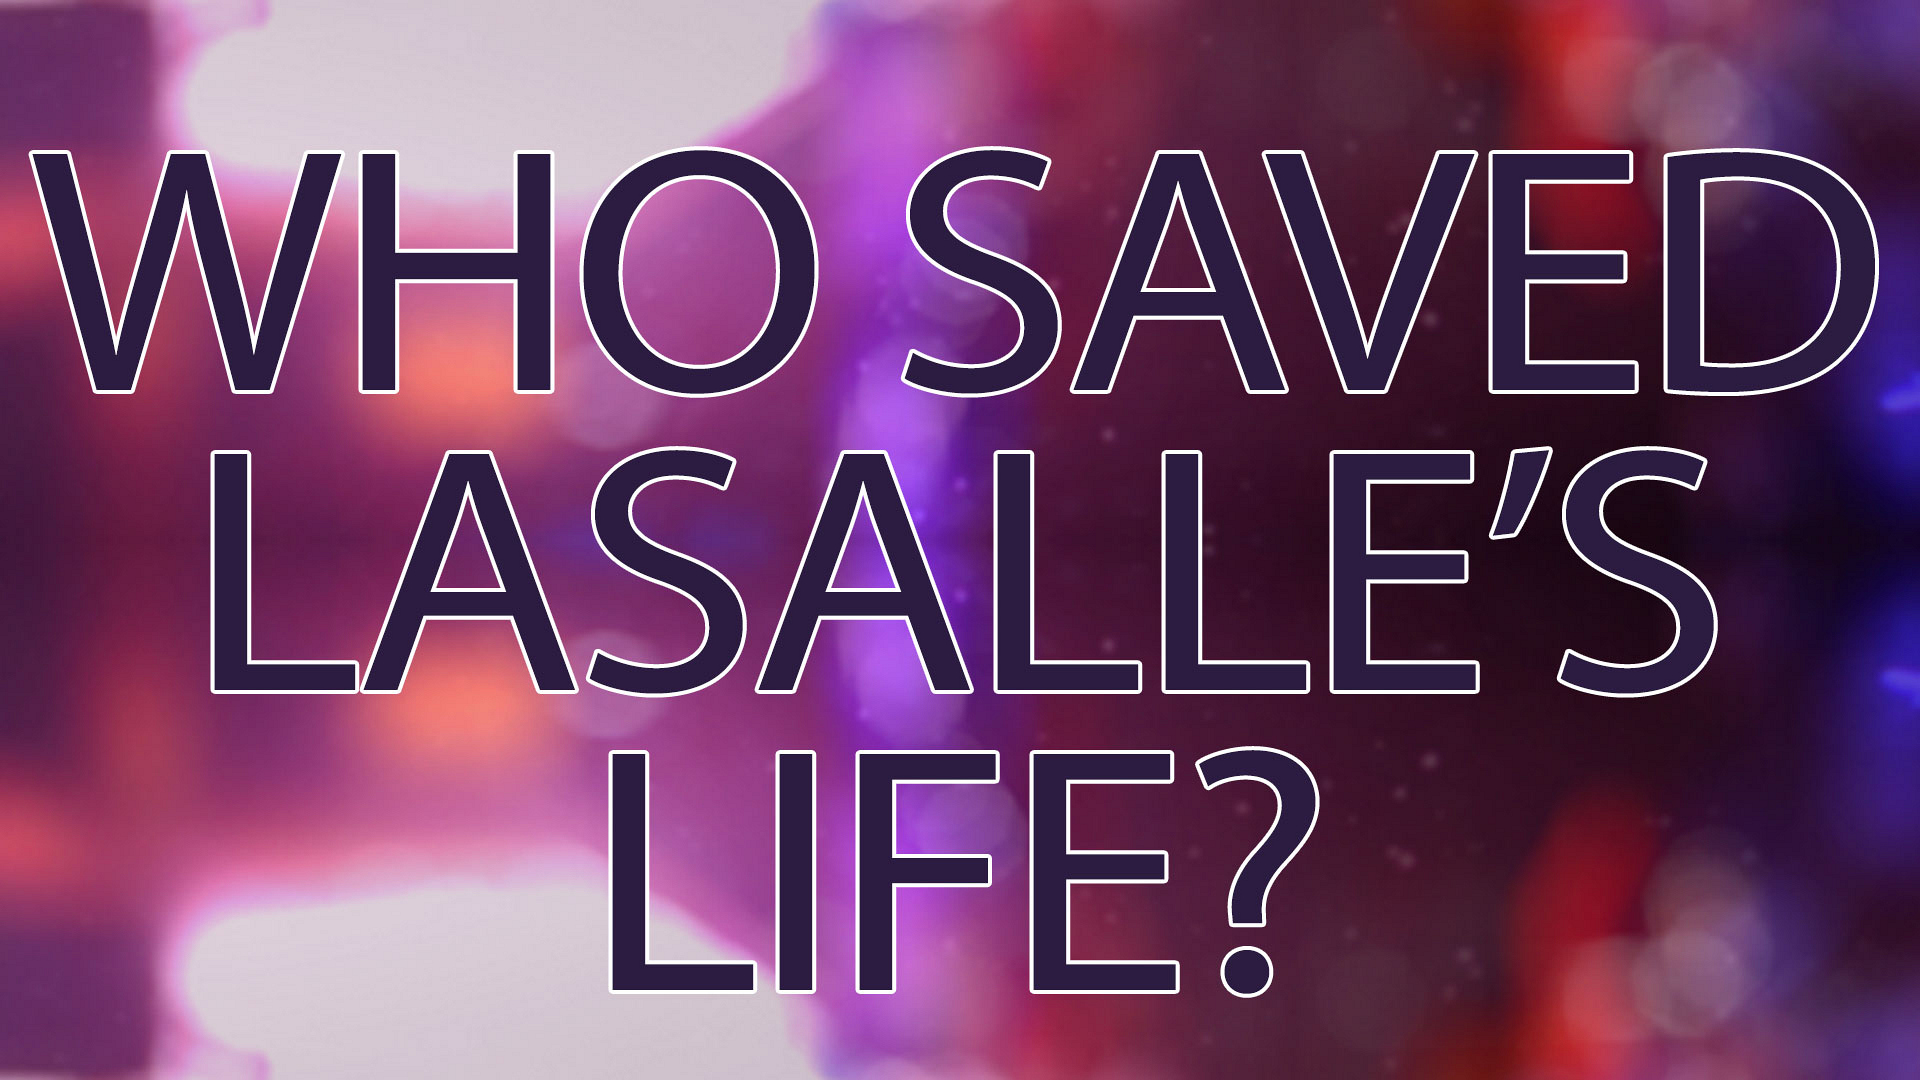 Who saved Lasalle's life?